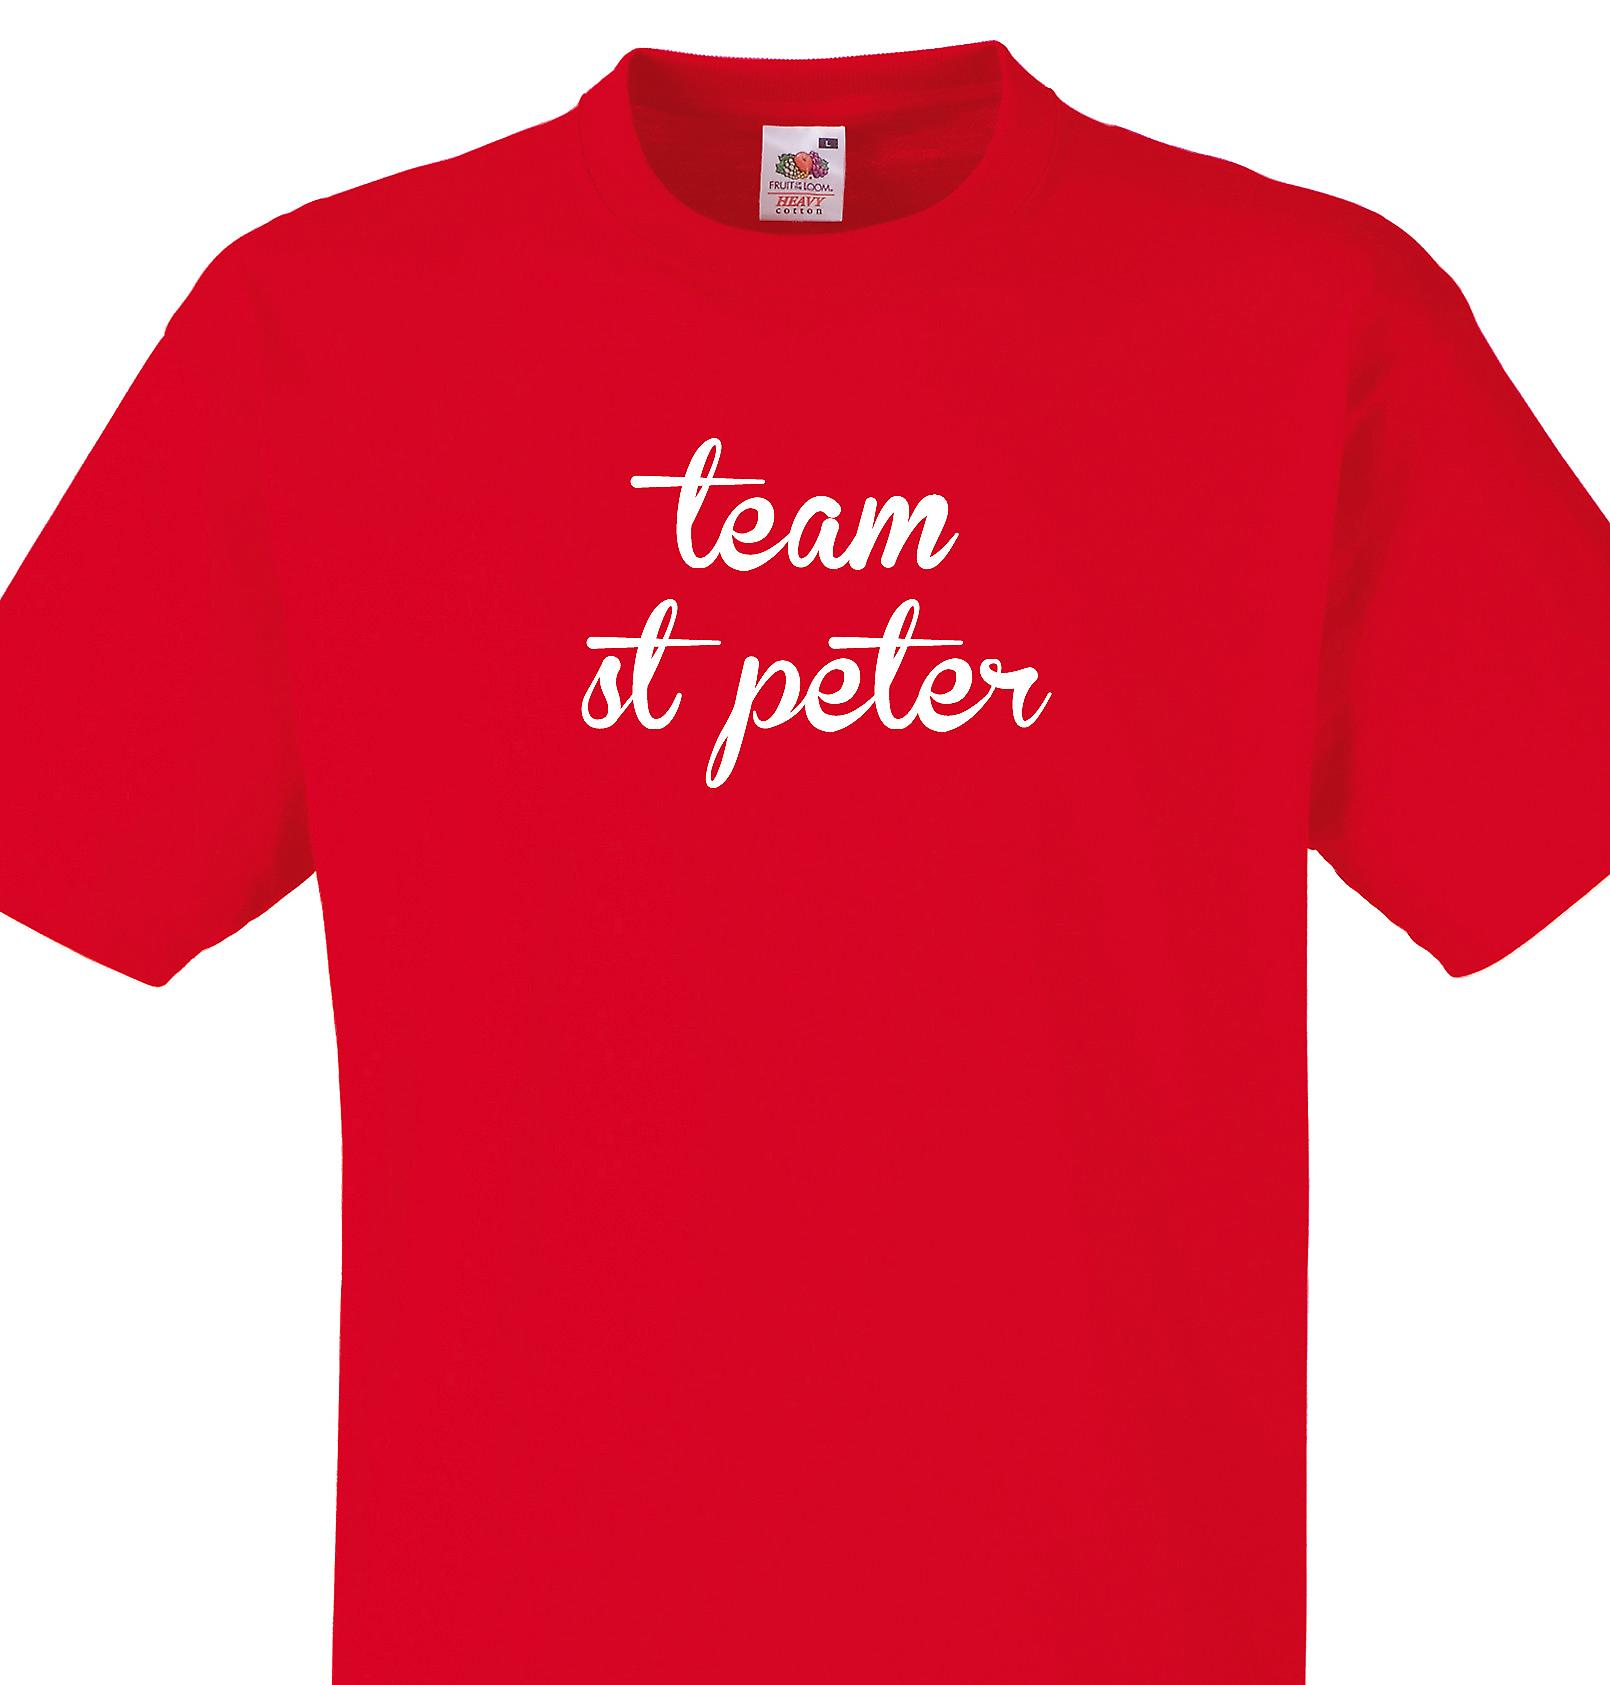 Team St peter Red T shirt